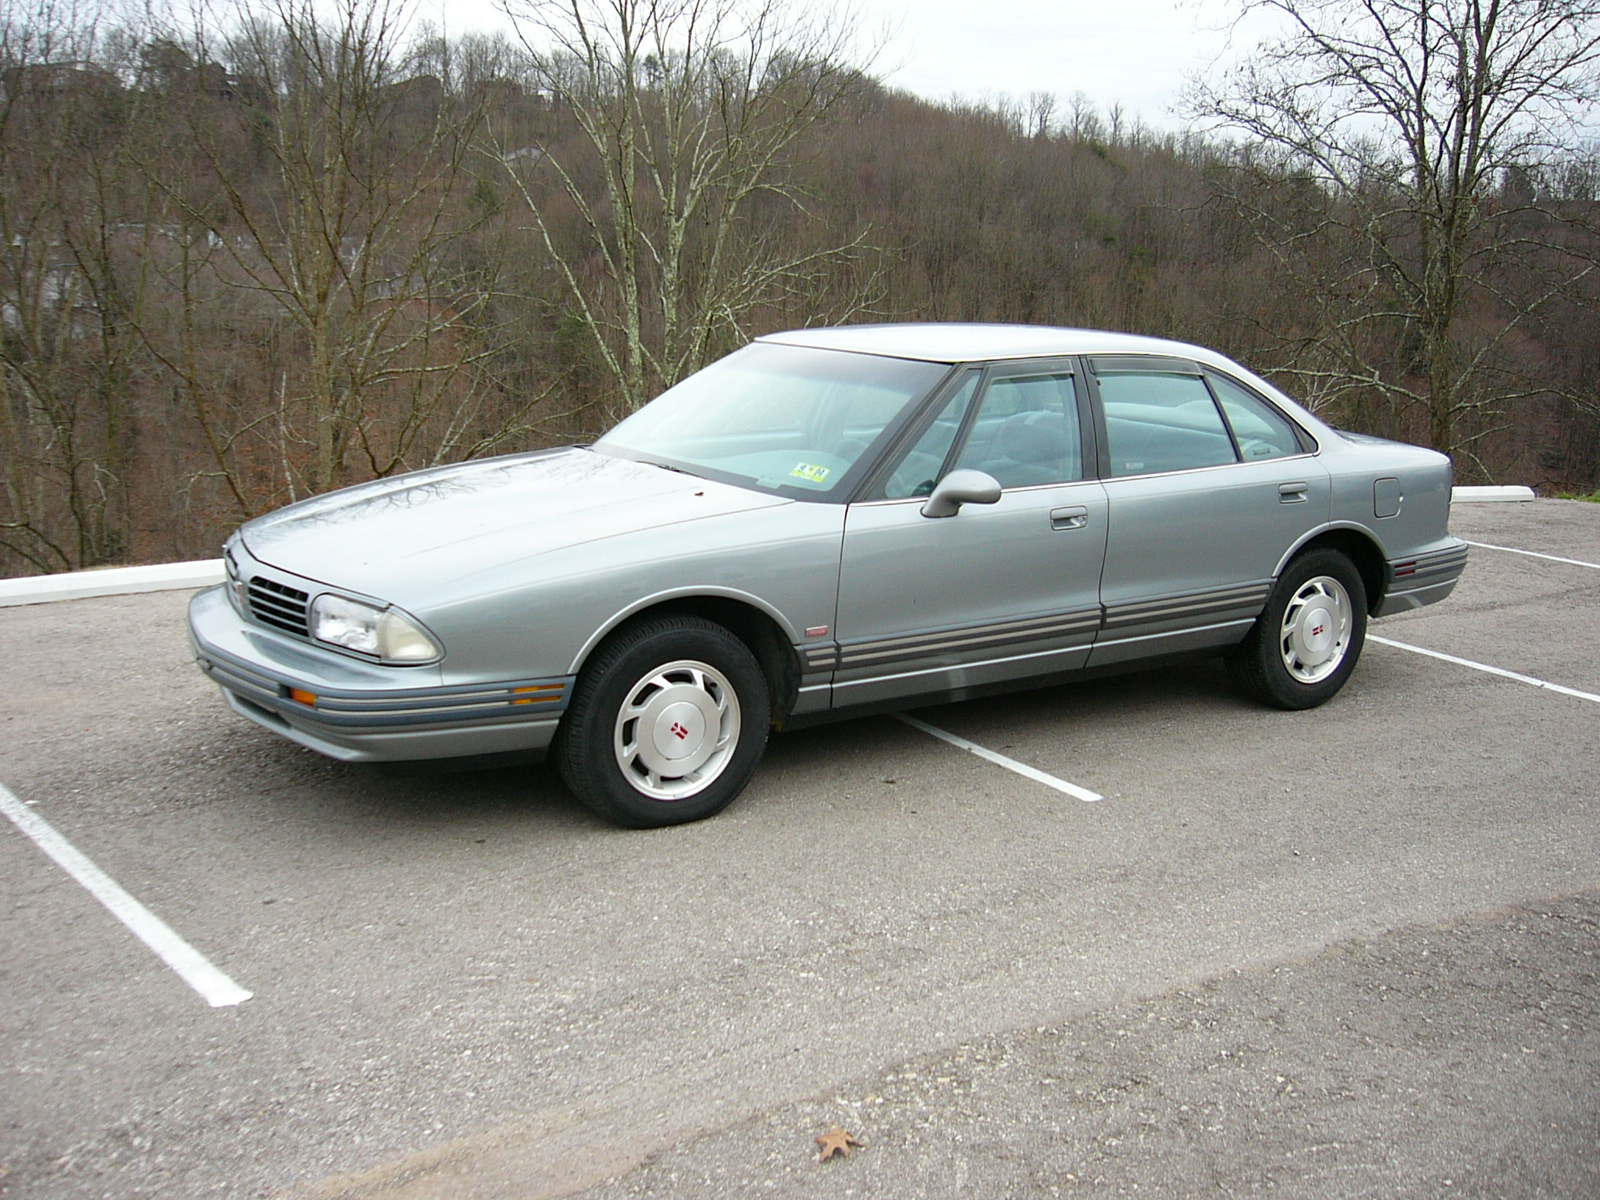 1995 oldsmobile eighty-eight royale in silver.jpg